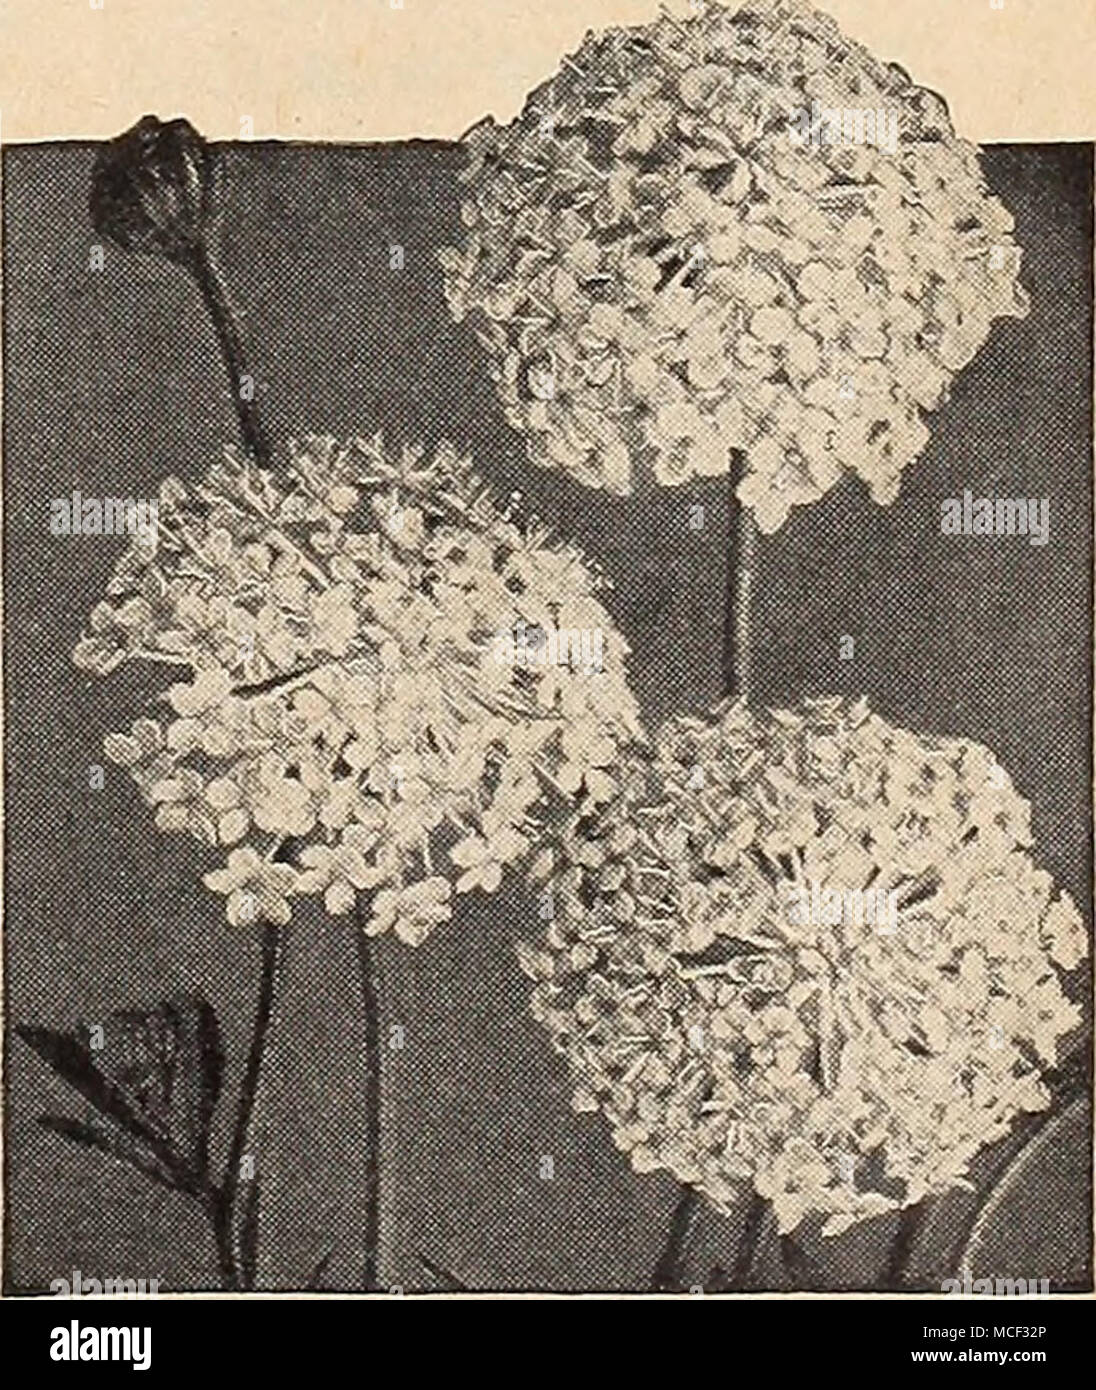 . Didiscus—Blue Lace Flower Didiscus—B/ue Lace Flower ® 2311 Coeruleus. Showy, lacy, light lavender flower heads borne profusely from July to frost. For borders and cutting. 18 inches. Pkt. 10c; large pkt. 30c. Dreer's Flower Seeds have won many prizes for our customers. ] ® =Annual; ® = Biennial; |hhp| = Half-Hardy Perennial; gPl = Hardy Perennial; [tp1= Tender Perennial £7 Stock Photo